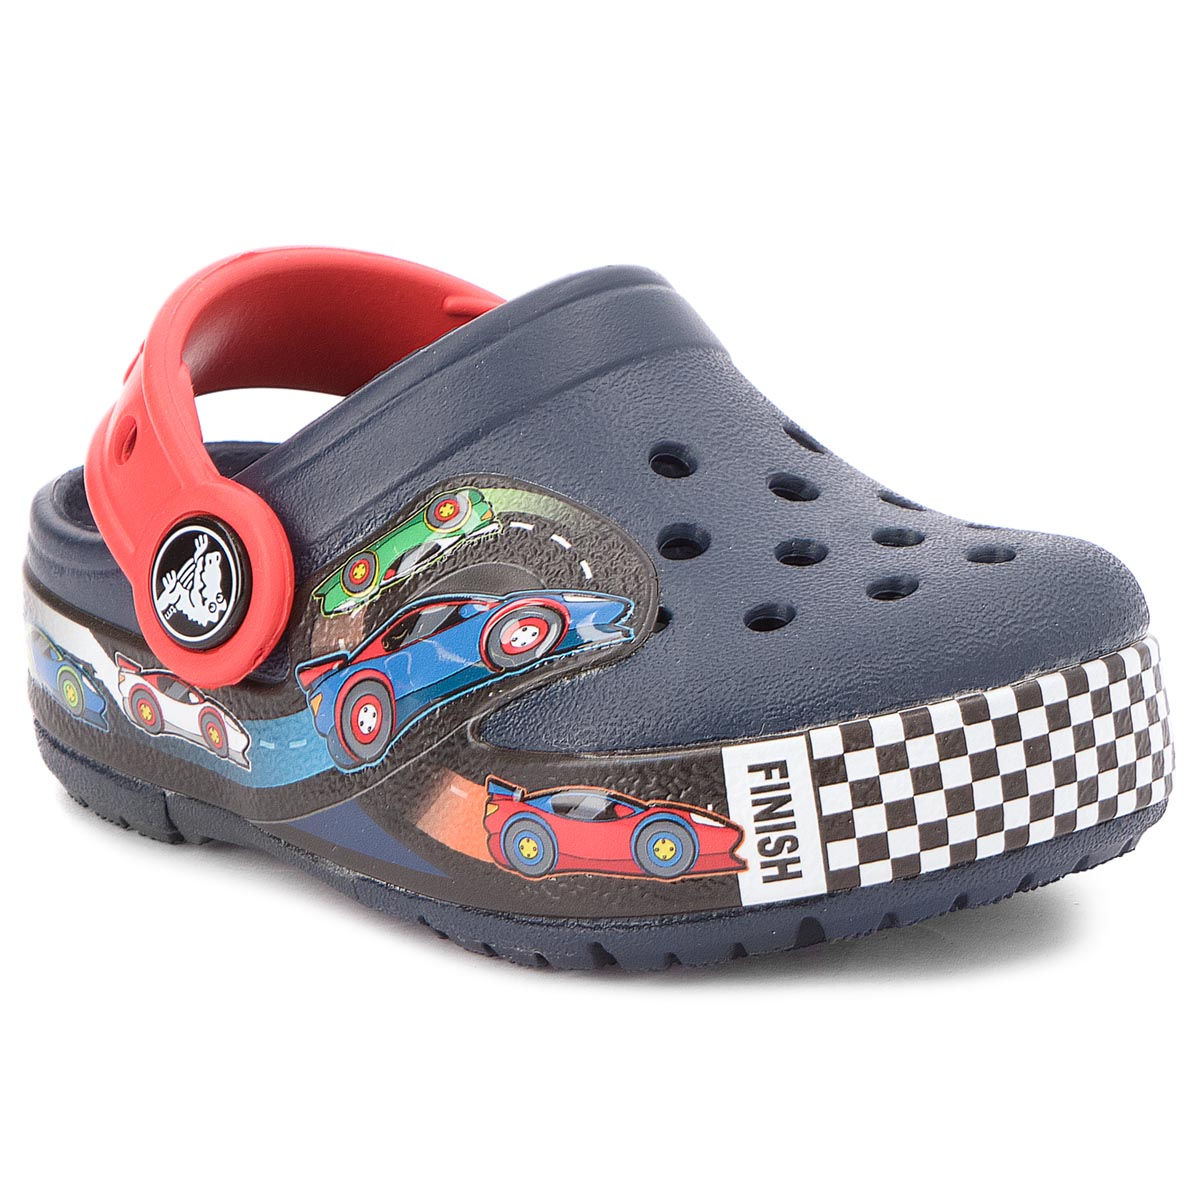 09414b9bfc4 Σανδάλια CROCS - Crocband Fun Lab Lights Clg K 204984 Navy - Glami.gr